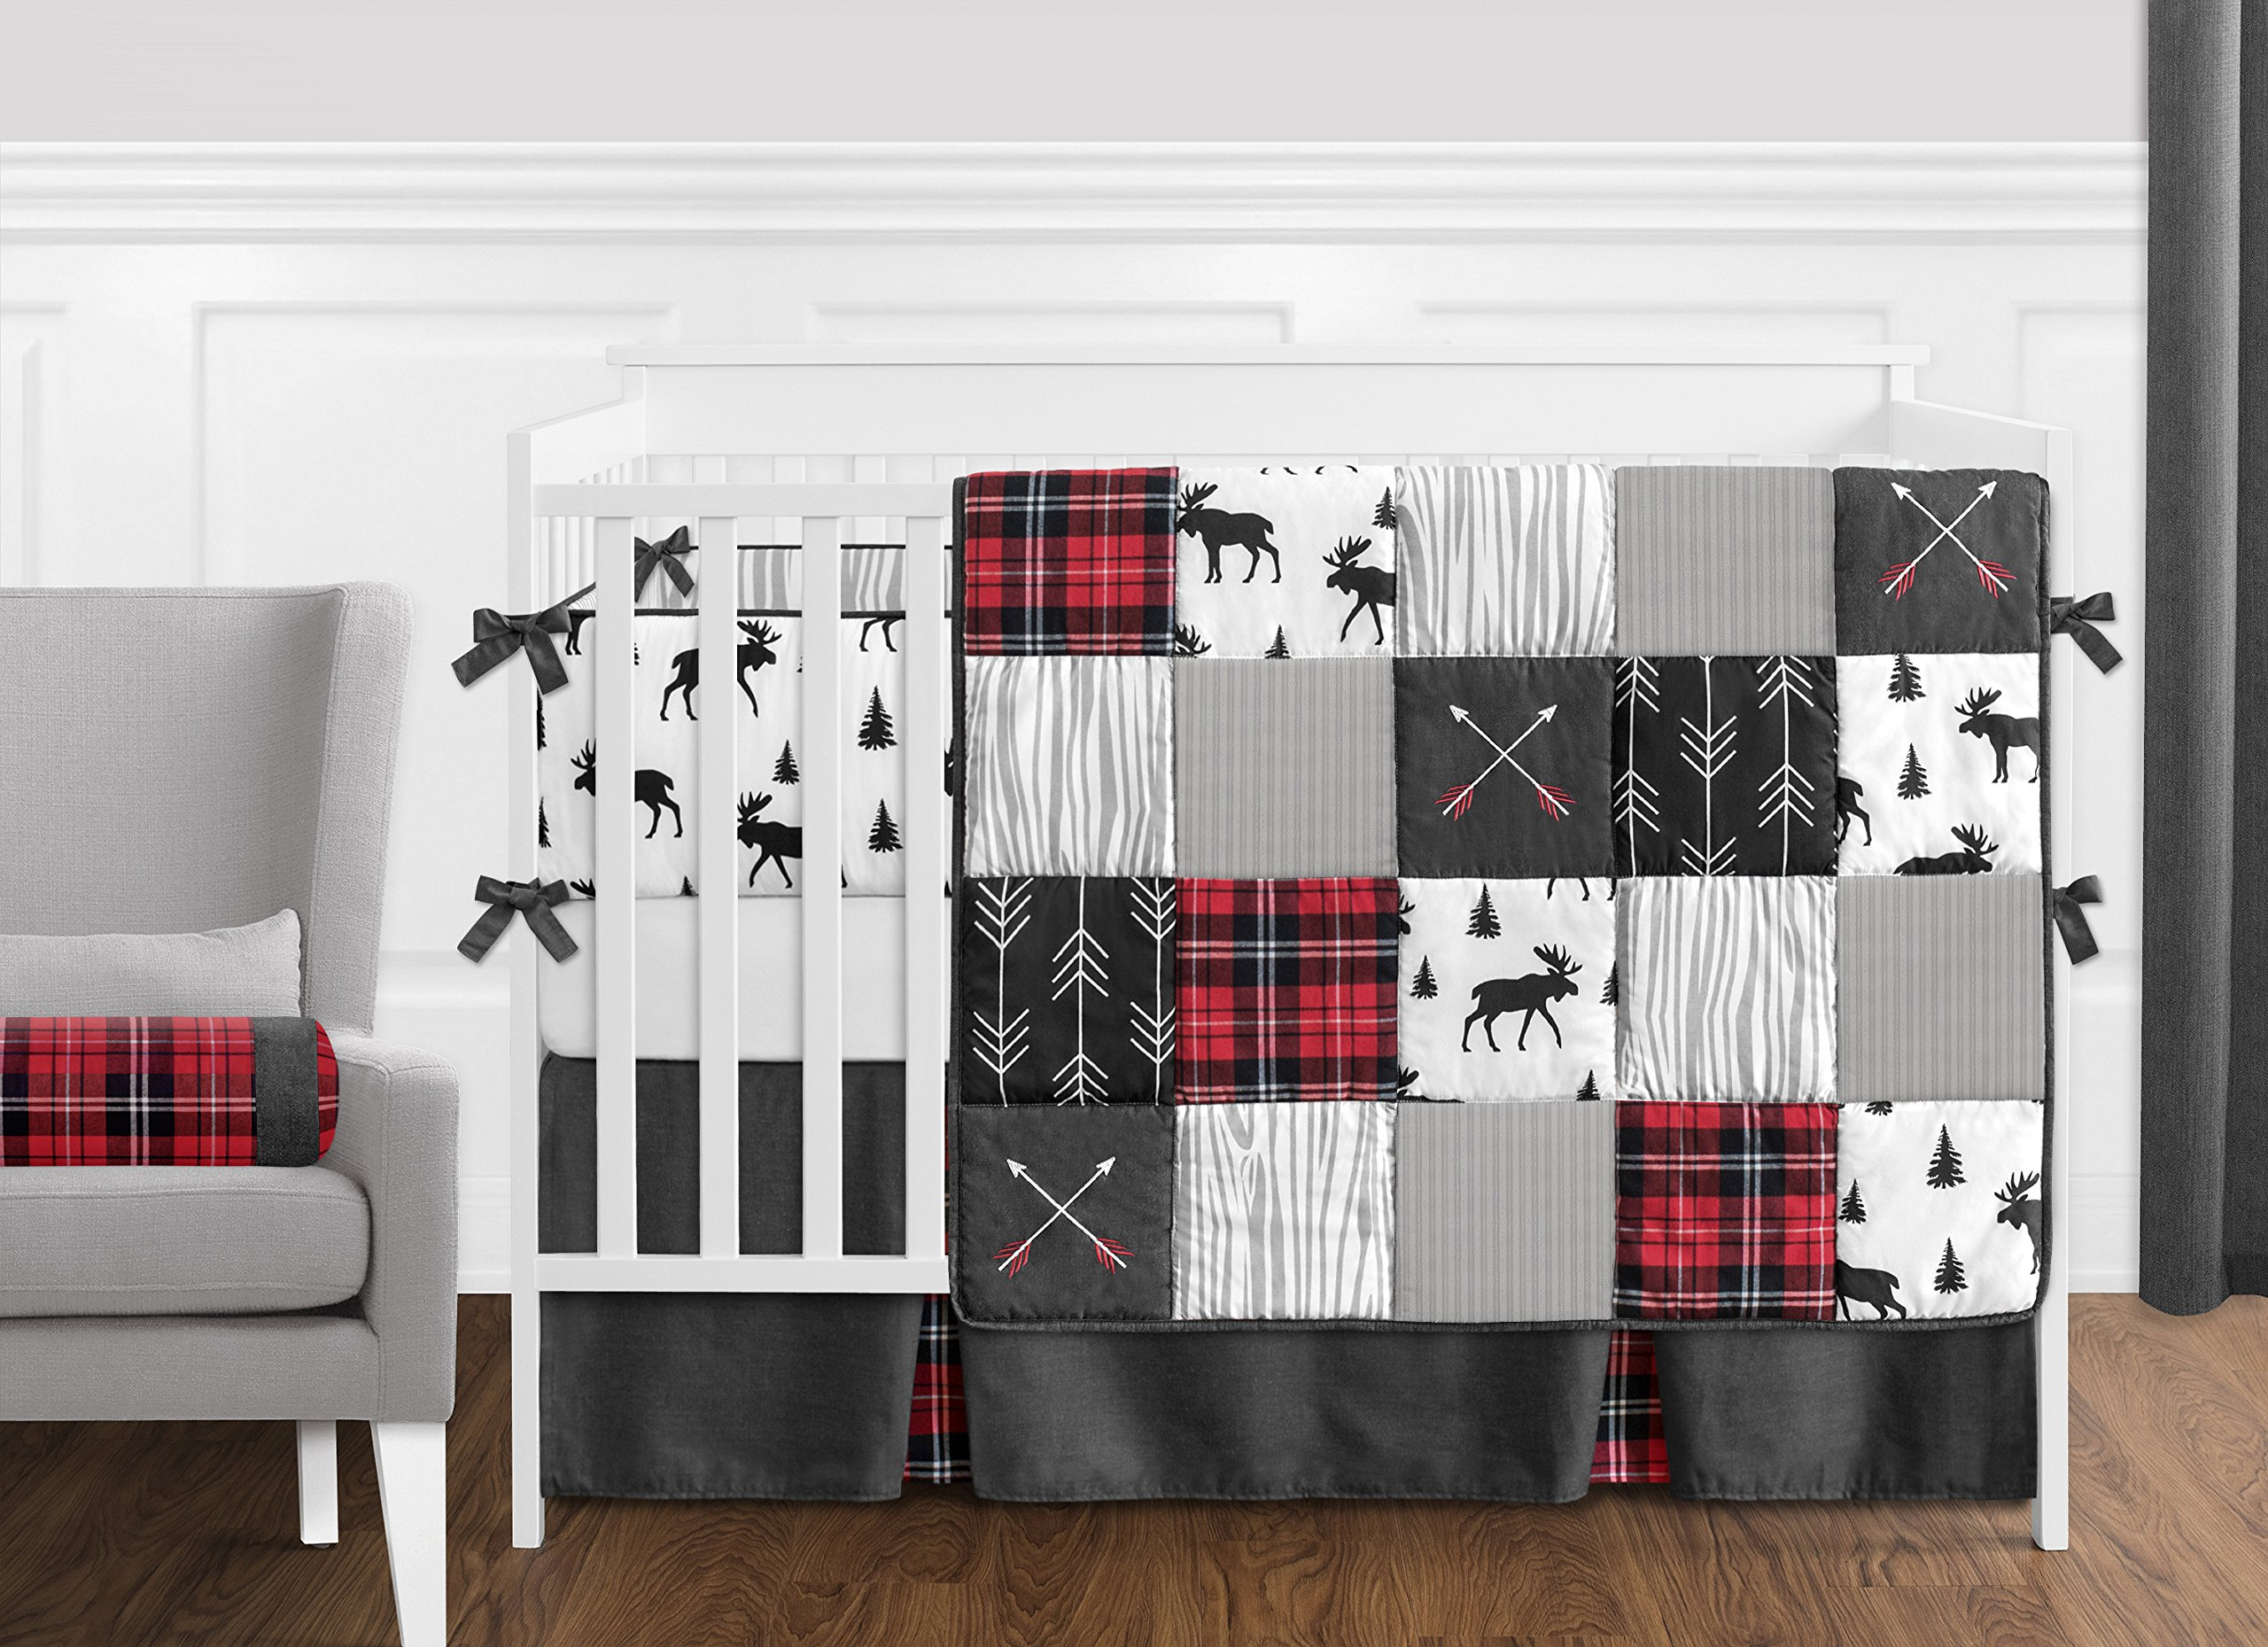 Sweet Jojo Designs Grey, Black and Red Woodland Plaid and Arrow Rustic Patch Baby Boy Crib Bedding Set with Bumper - 9 Pieces - Flannel Moose Gray by Sweet Jojo Designs